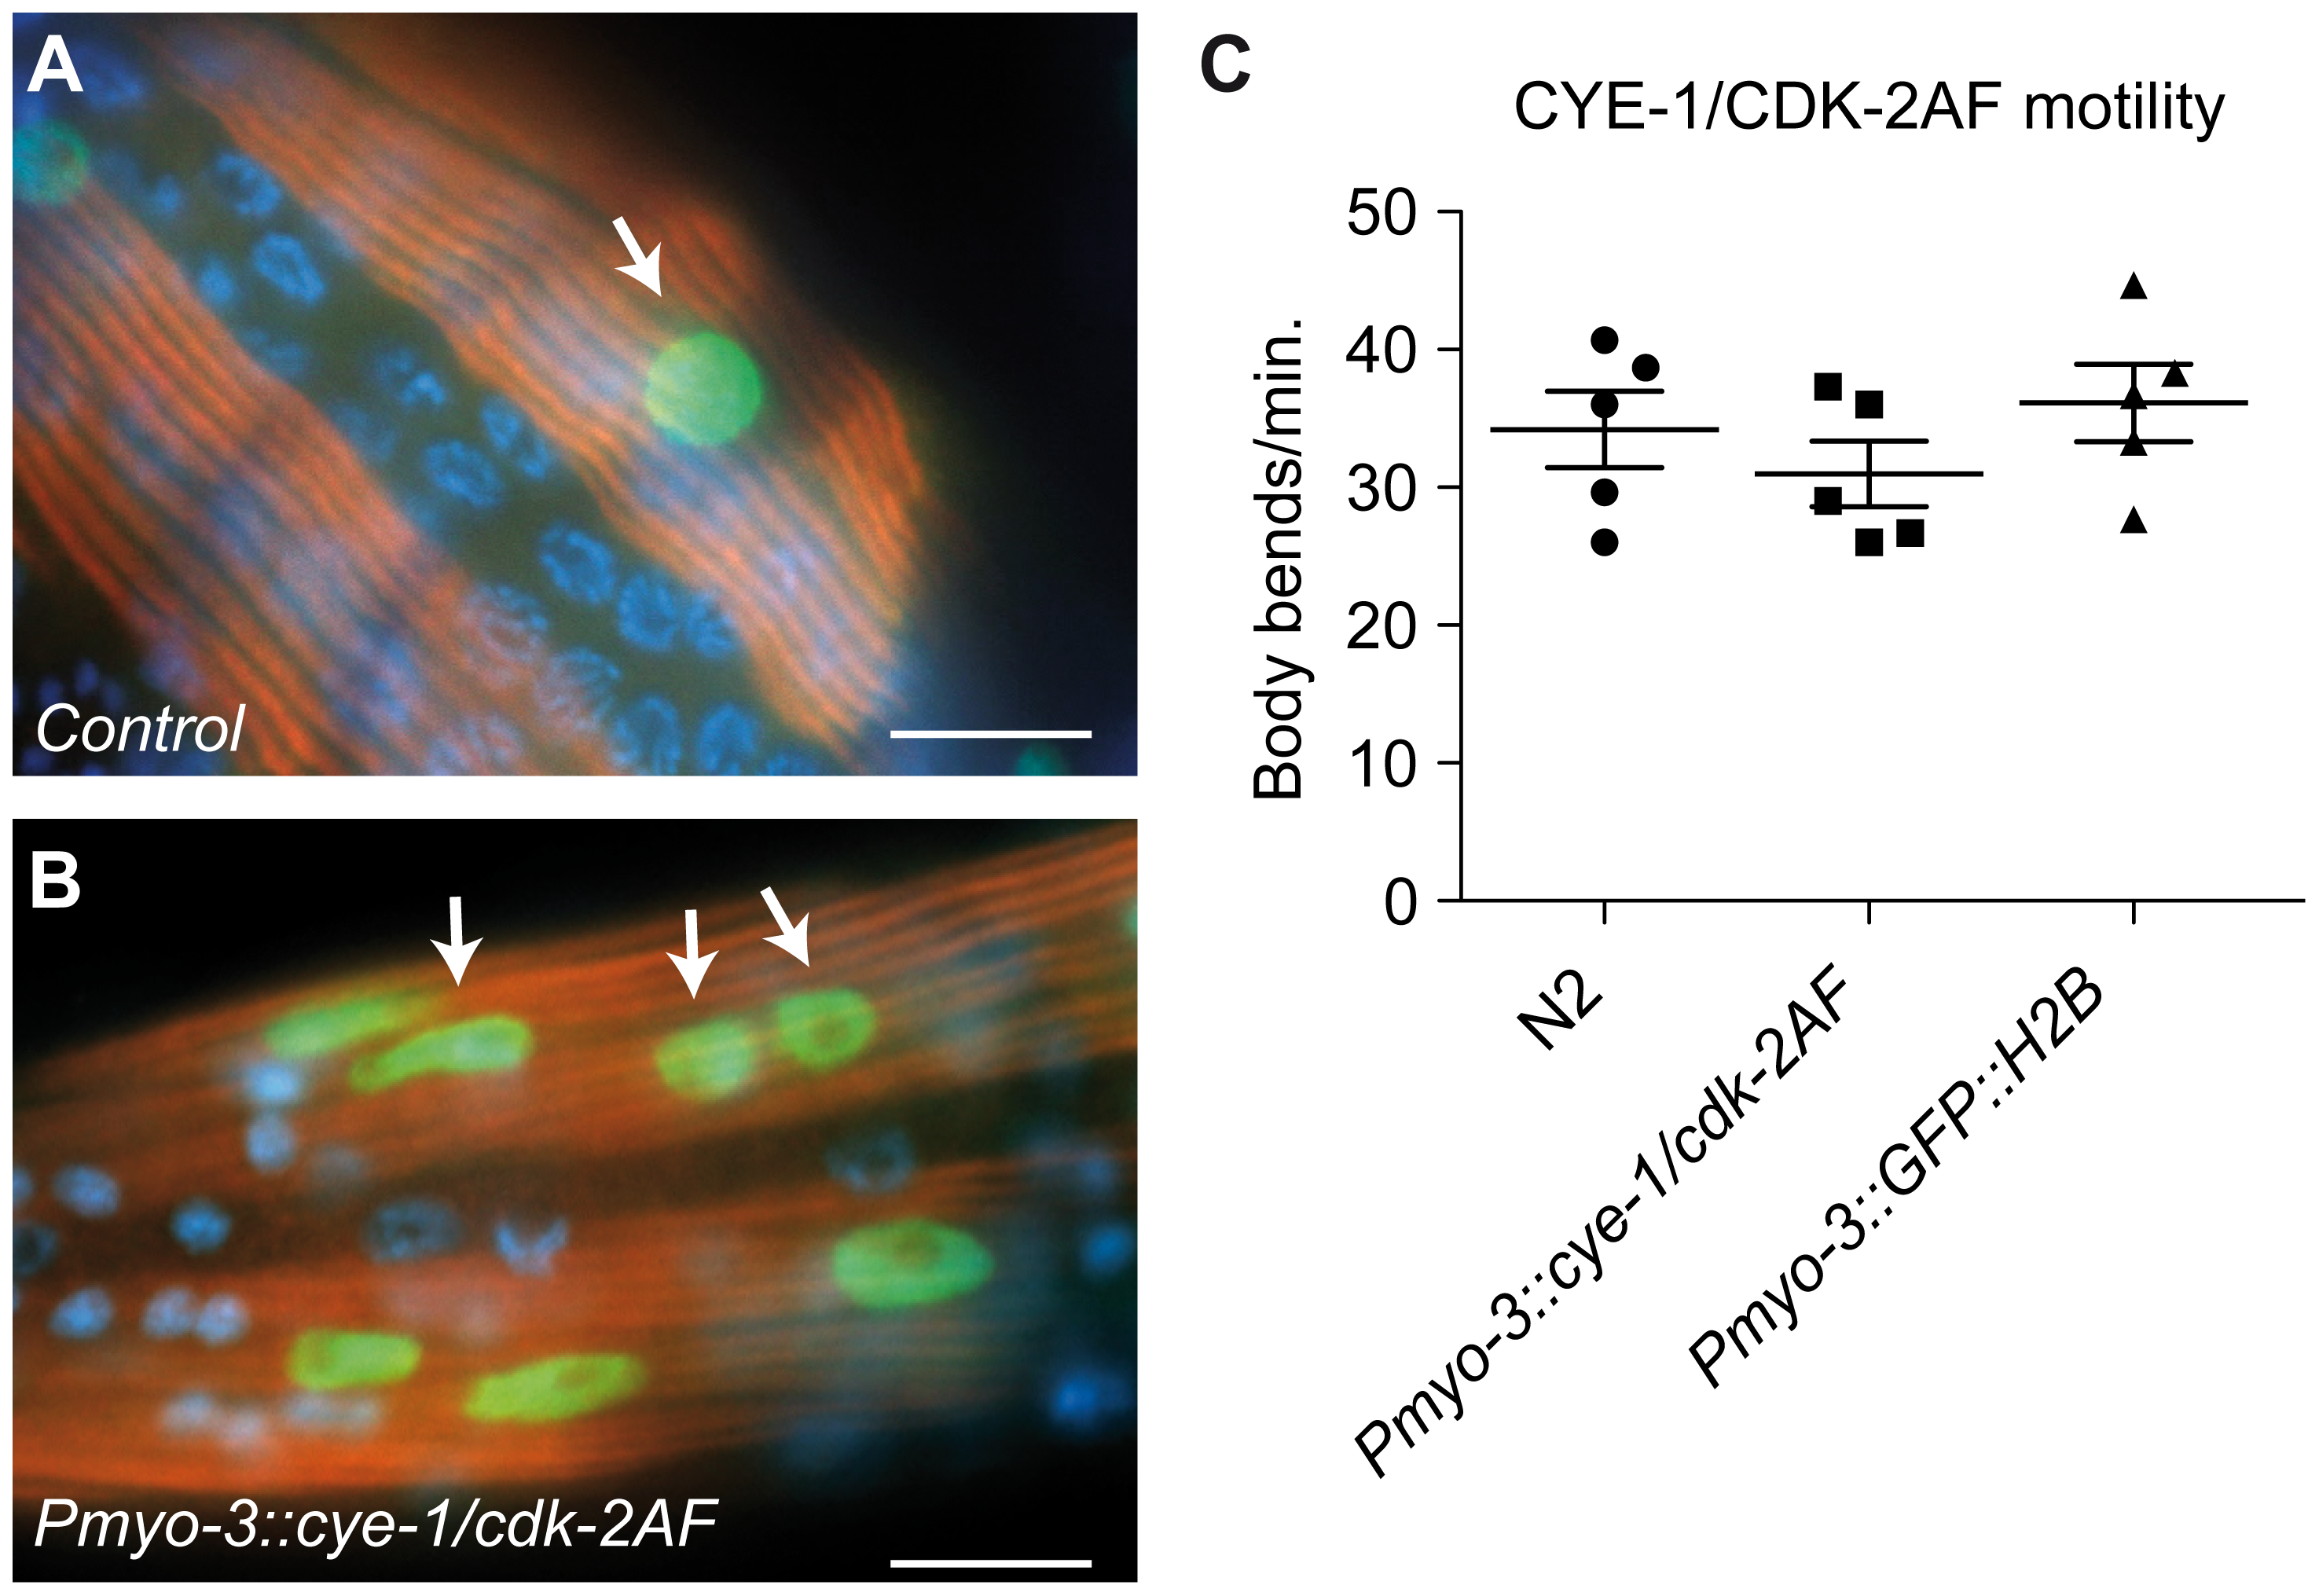 Animals with mitotic body-wall muscle retain normal motility and muscle structure.